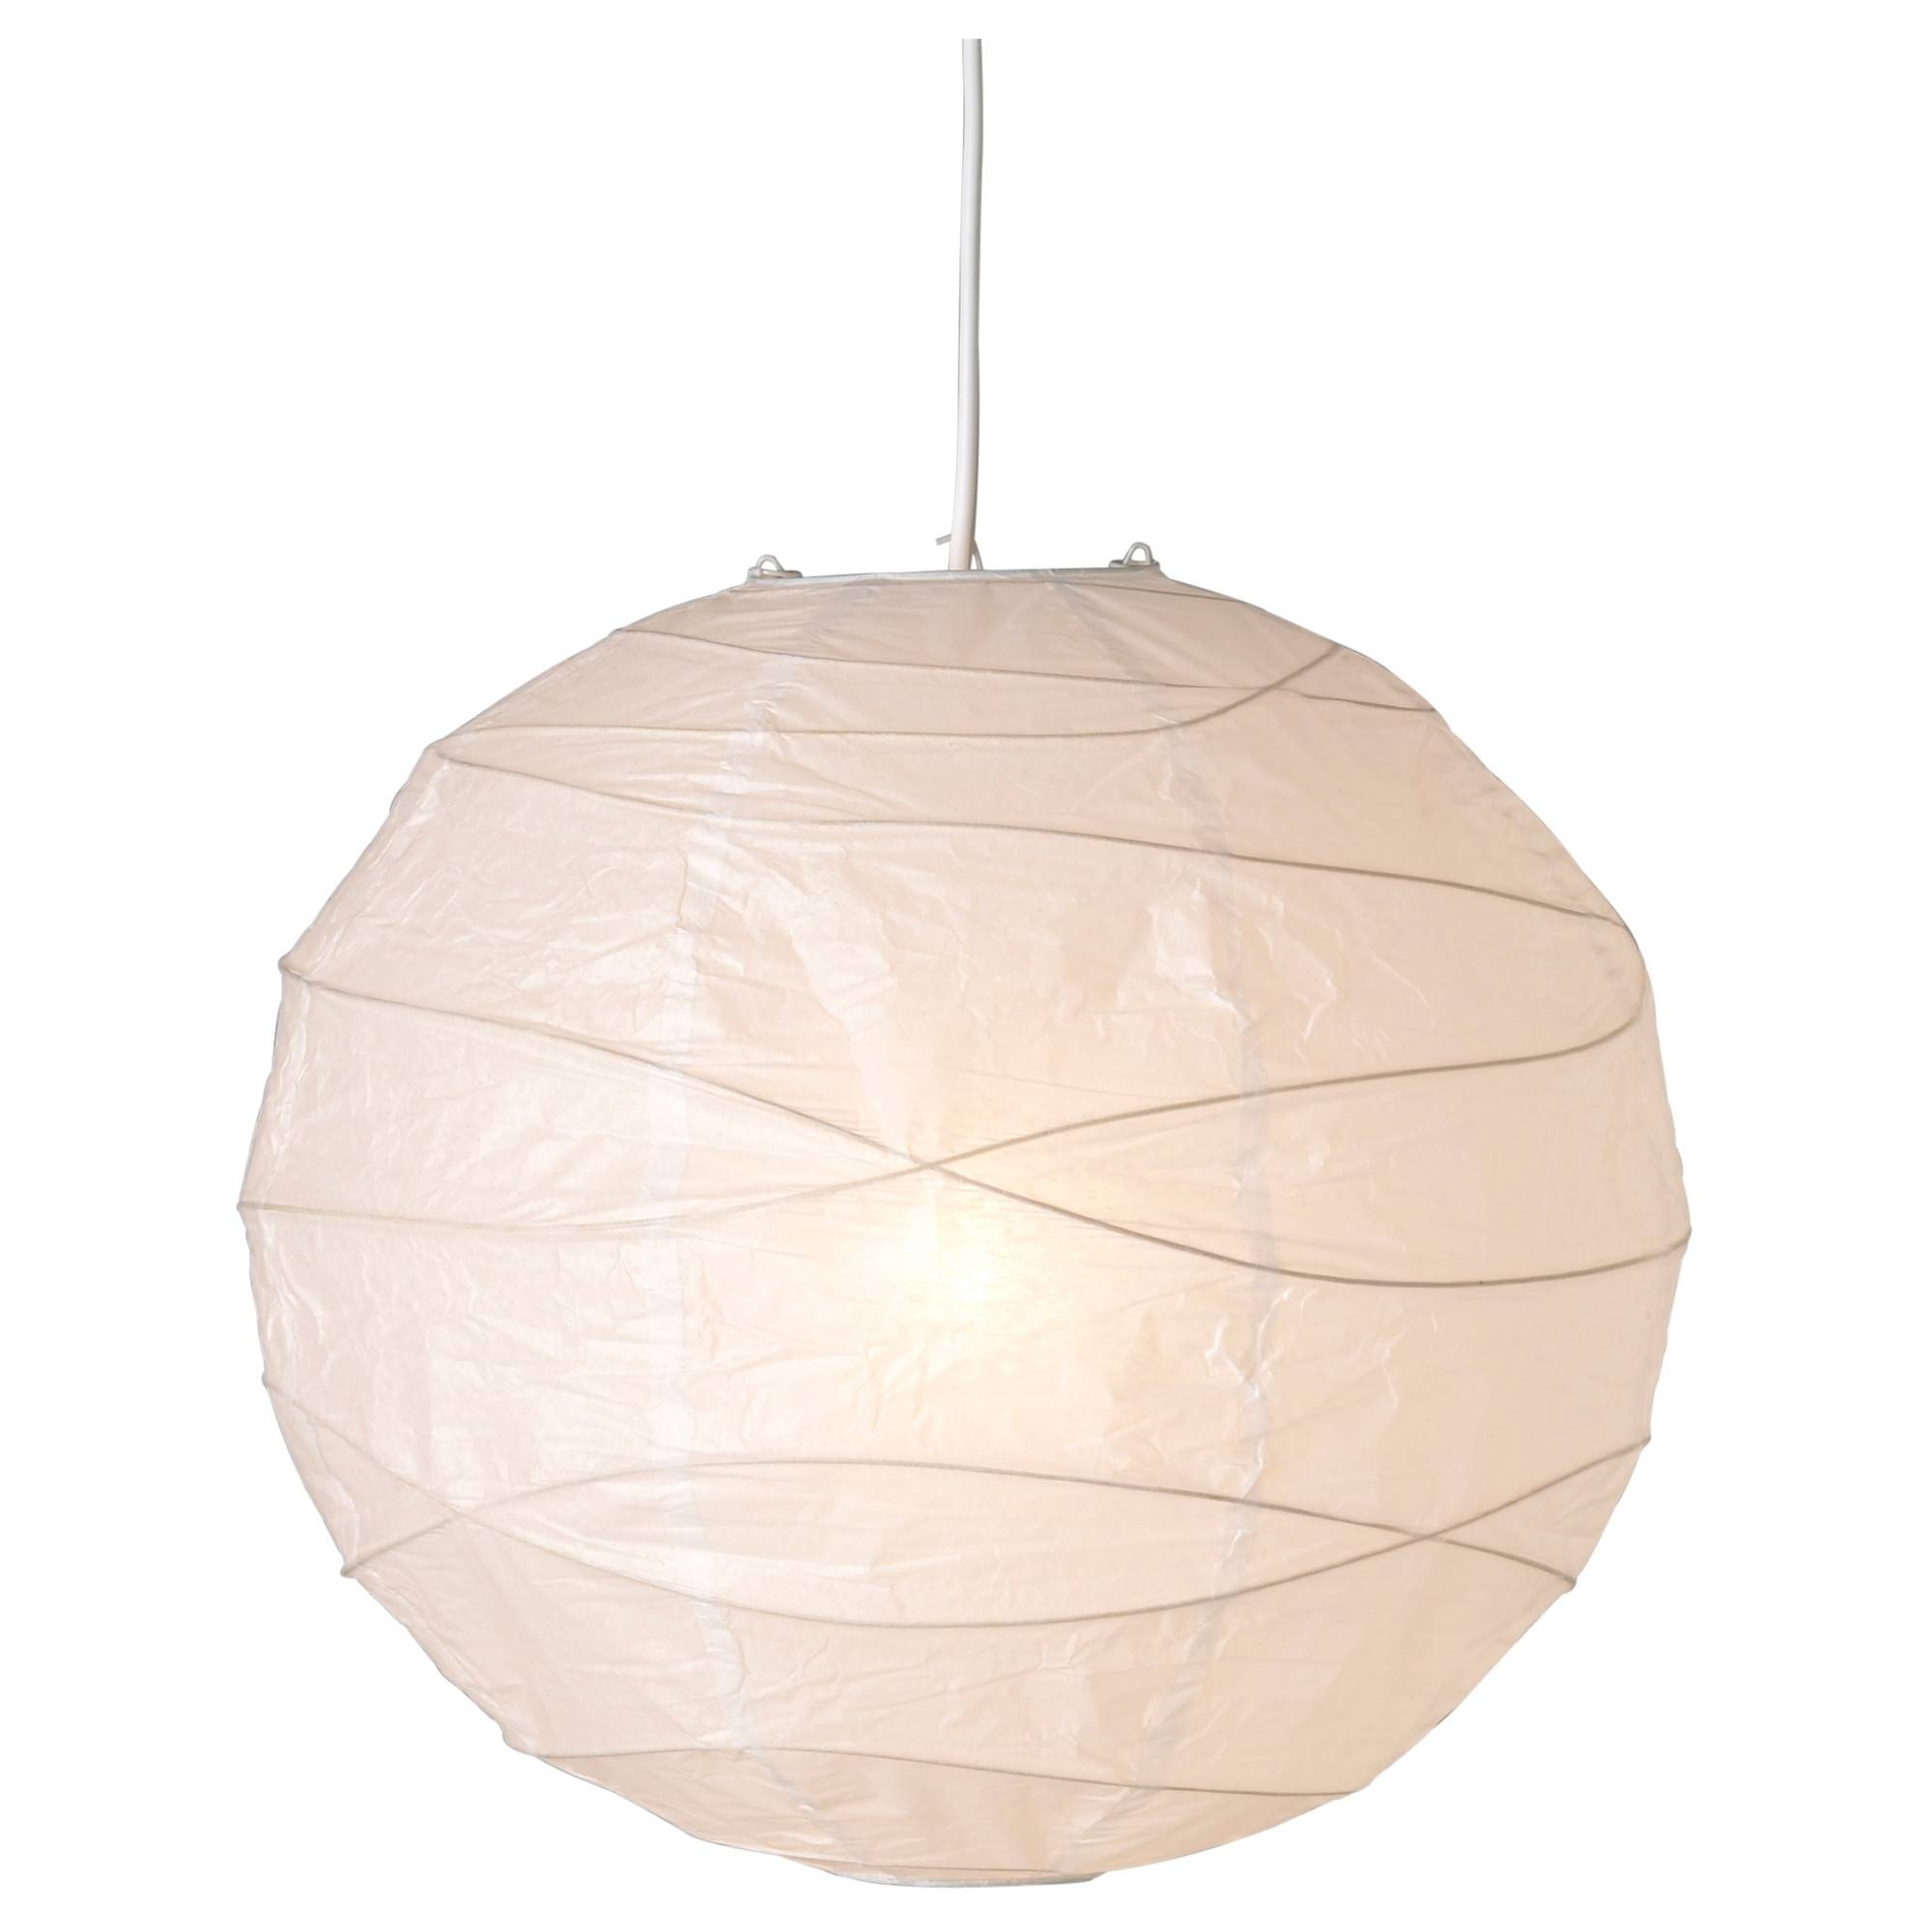 Regolit Pendant Lamp Shade - Ikea in Ikea Globe Pendant Lights (Image 14 of 15)